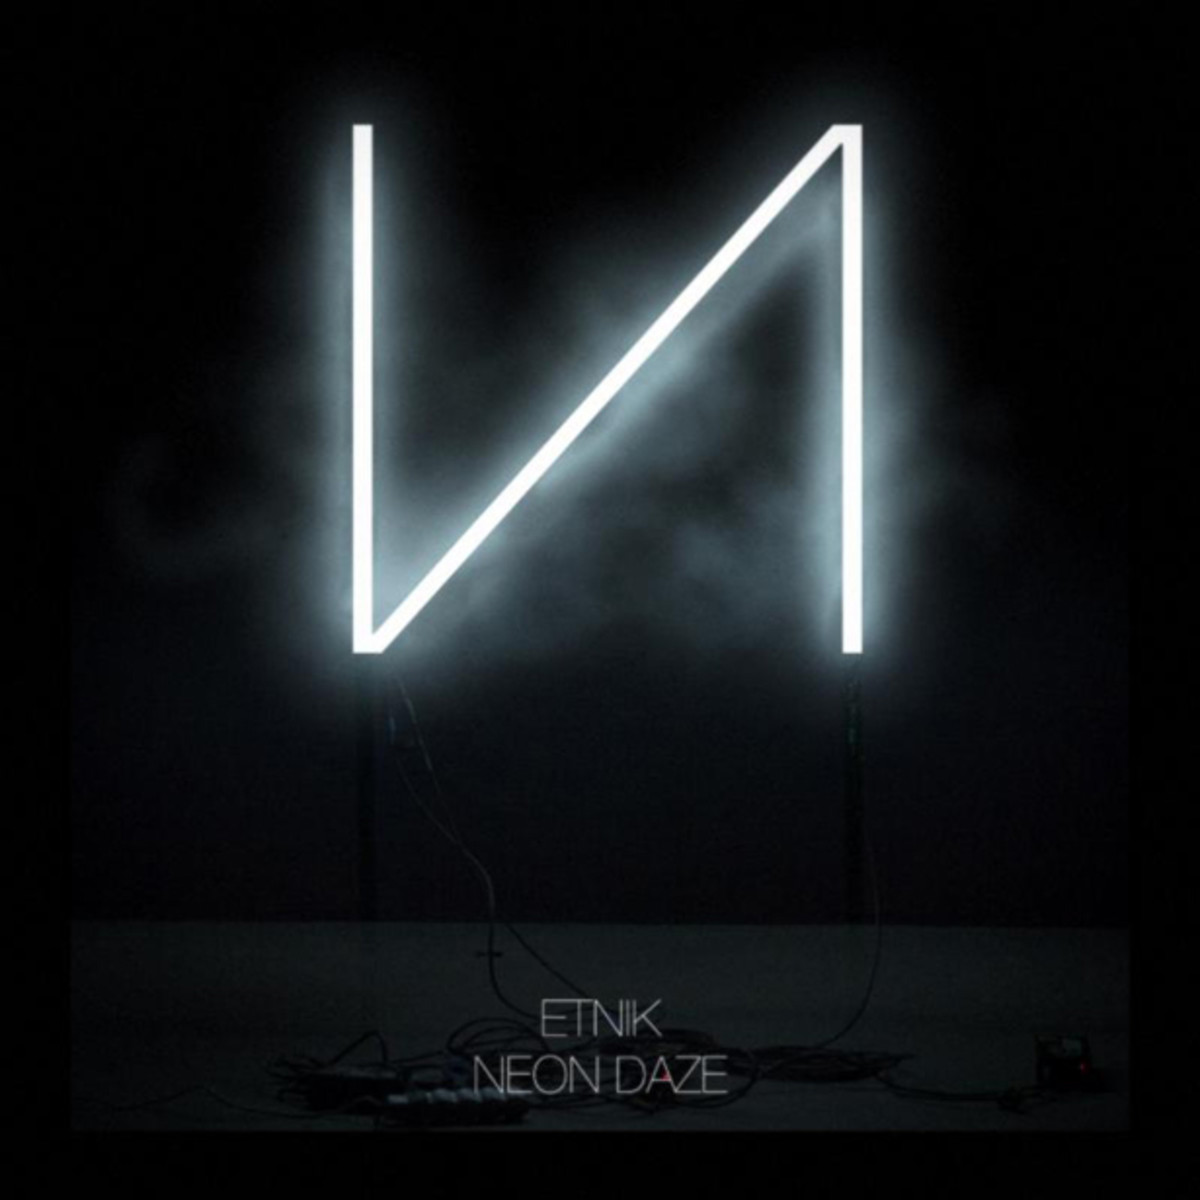 EDM News: Etnik To Release His Neon Daze EP Via OWSLA / BITCLAP! On November 19th